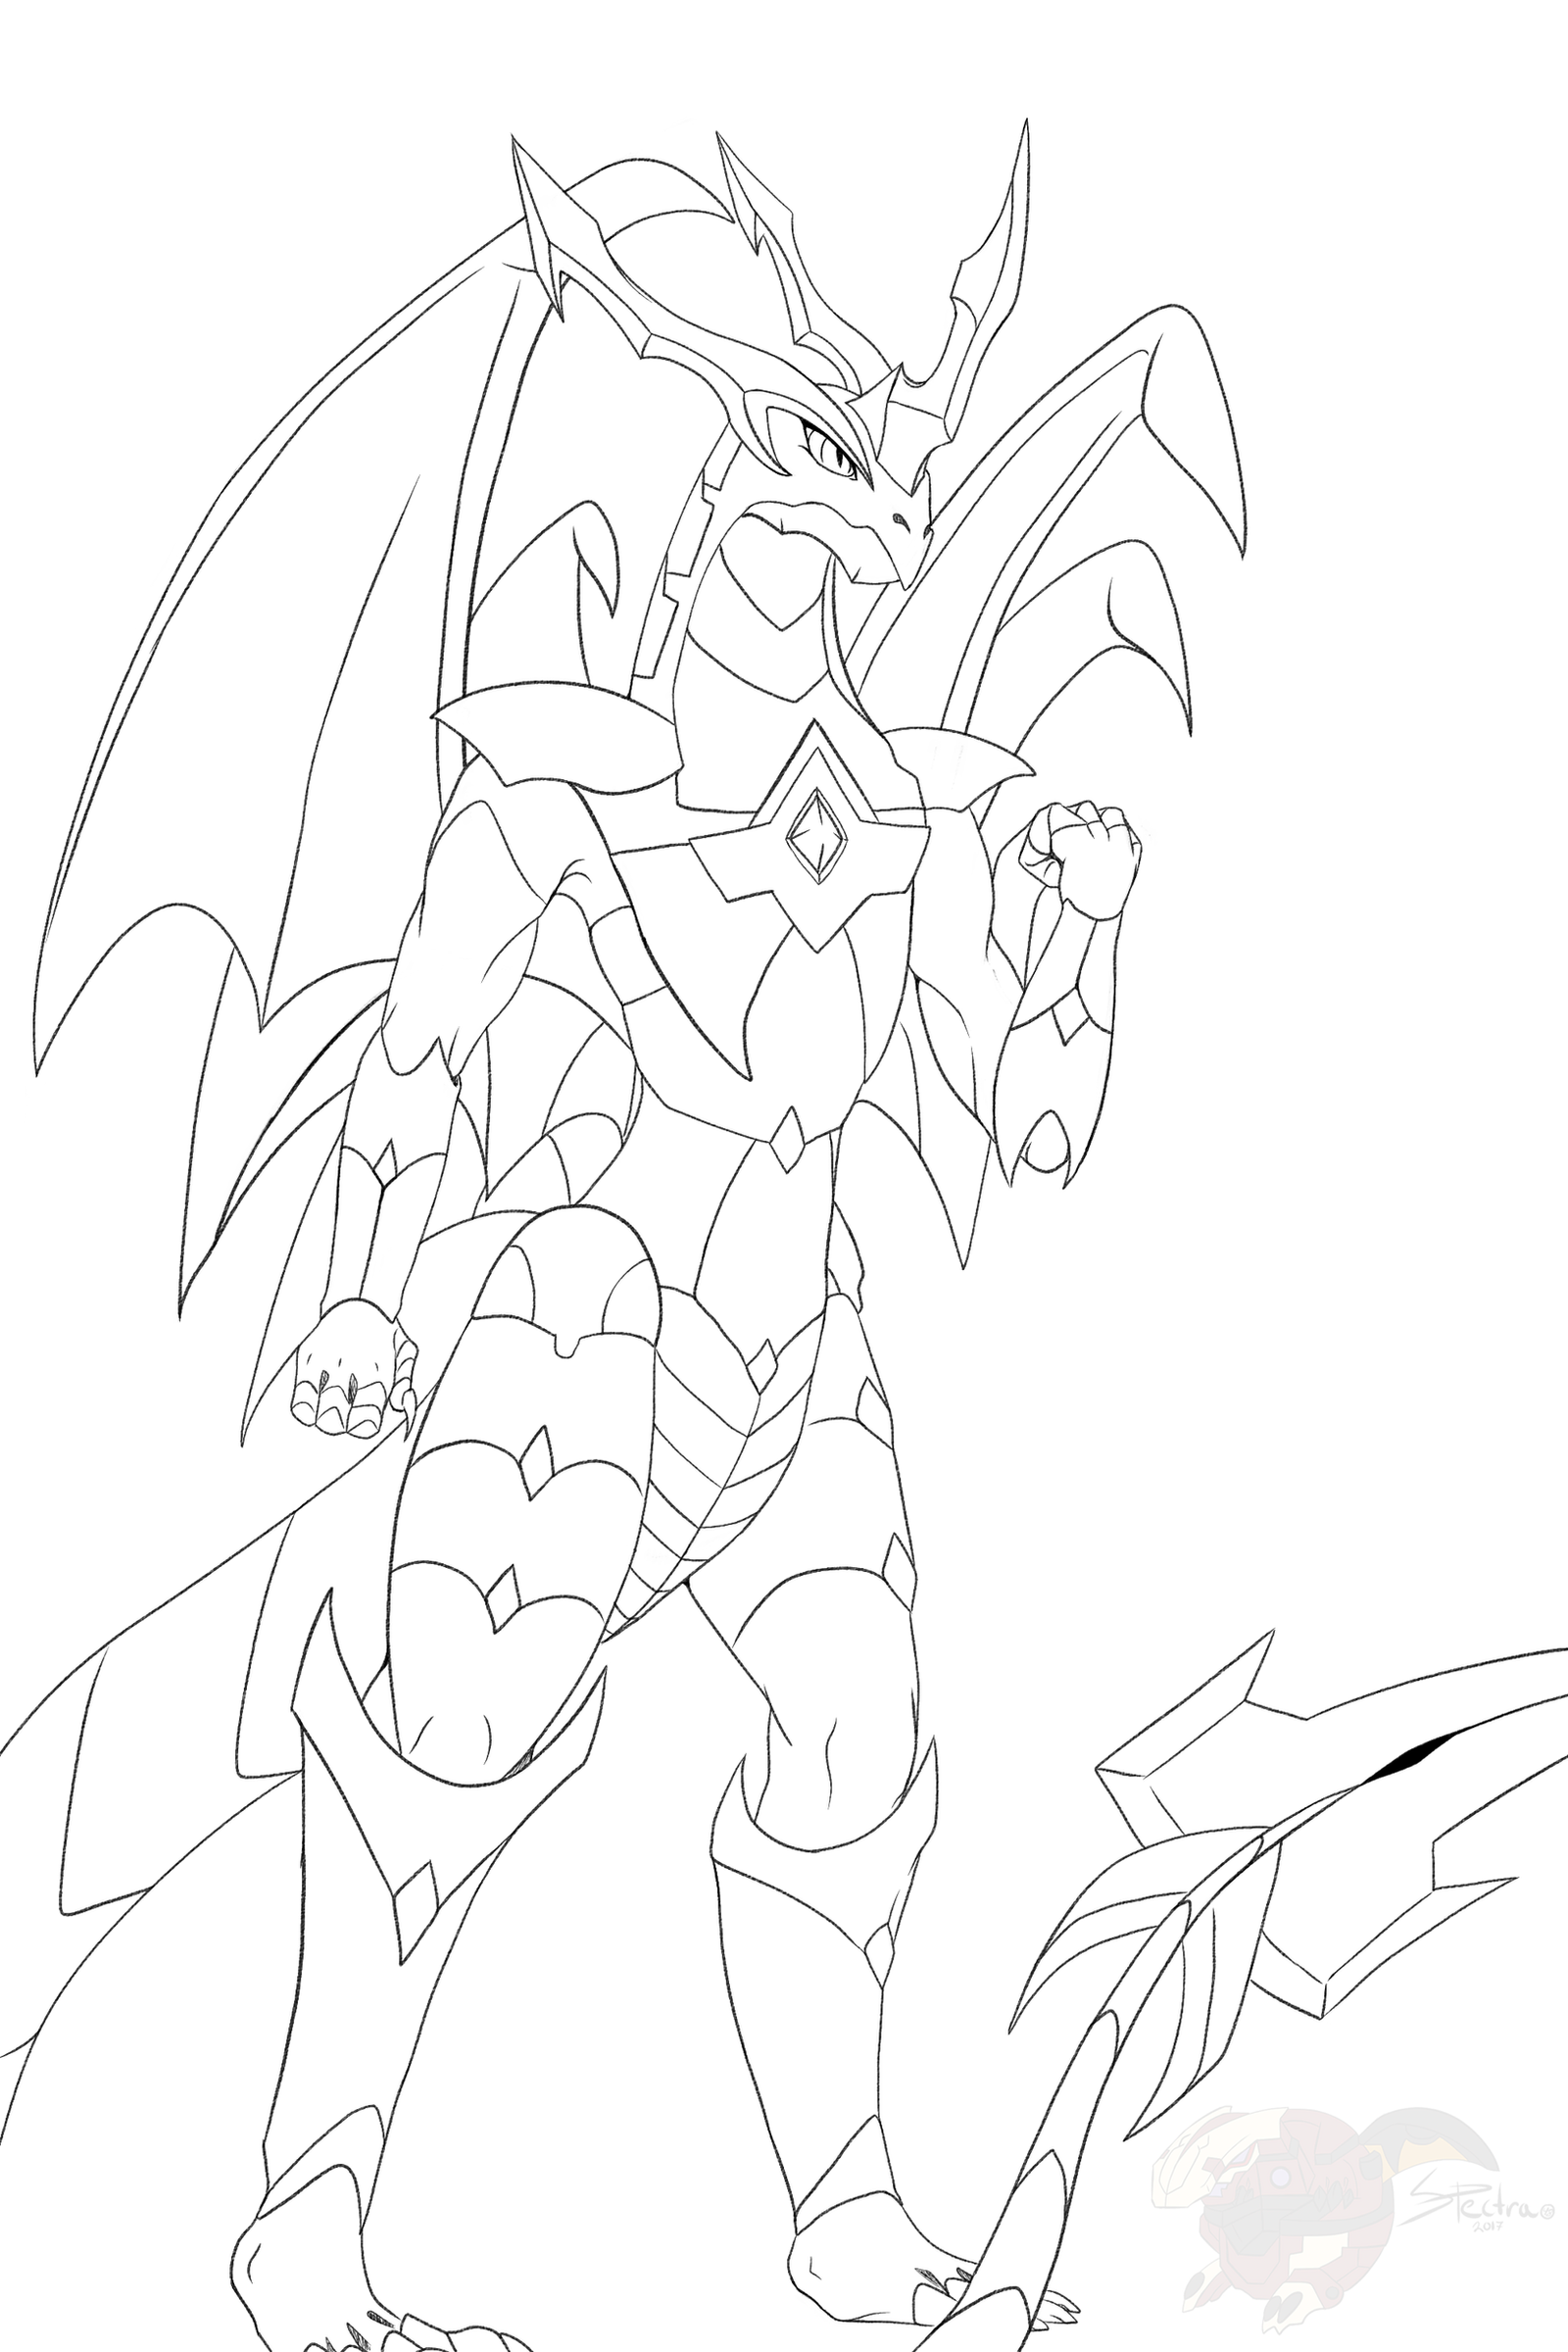 Bakugan coloring page / Dragonoid by Spectra48 on DeviantArt